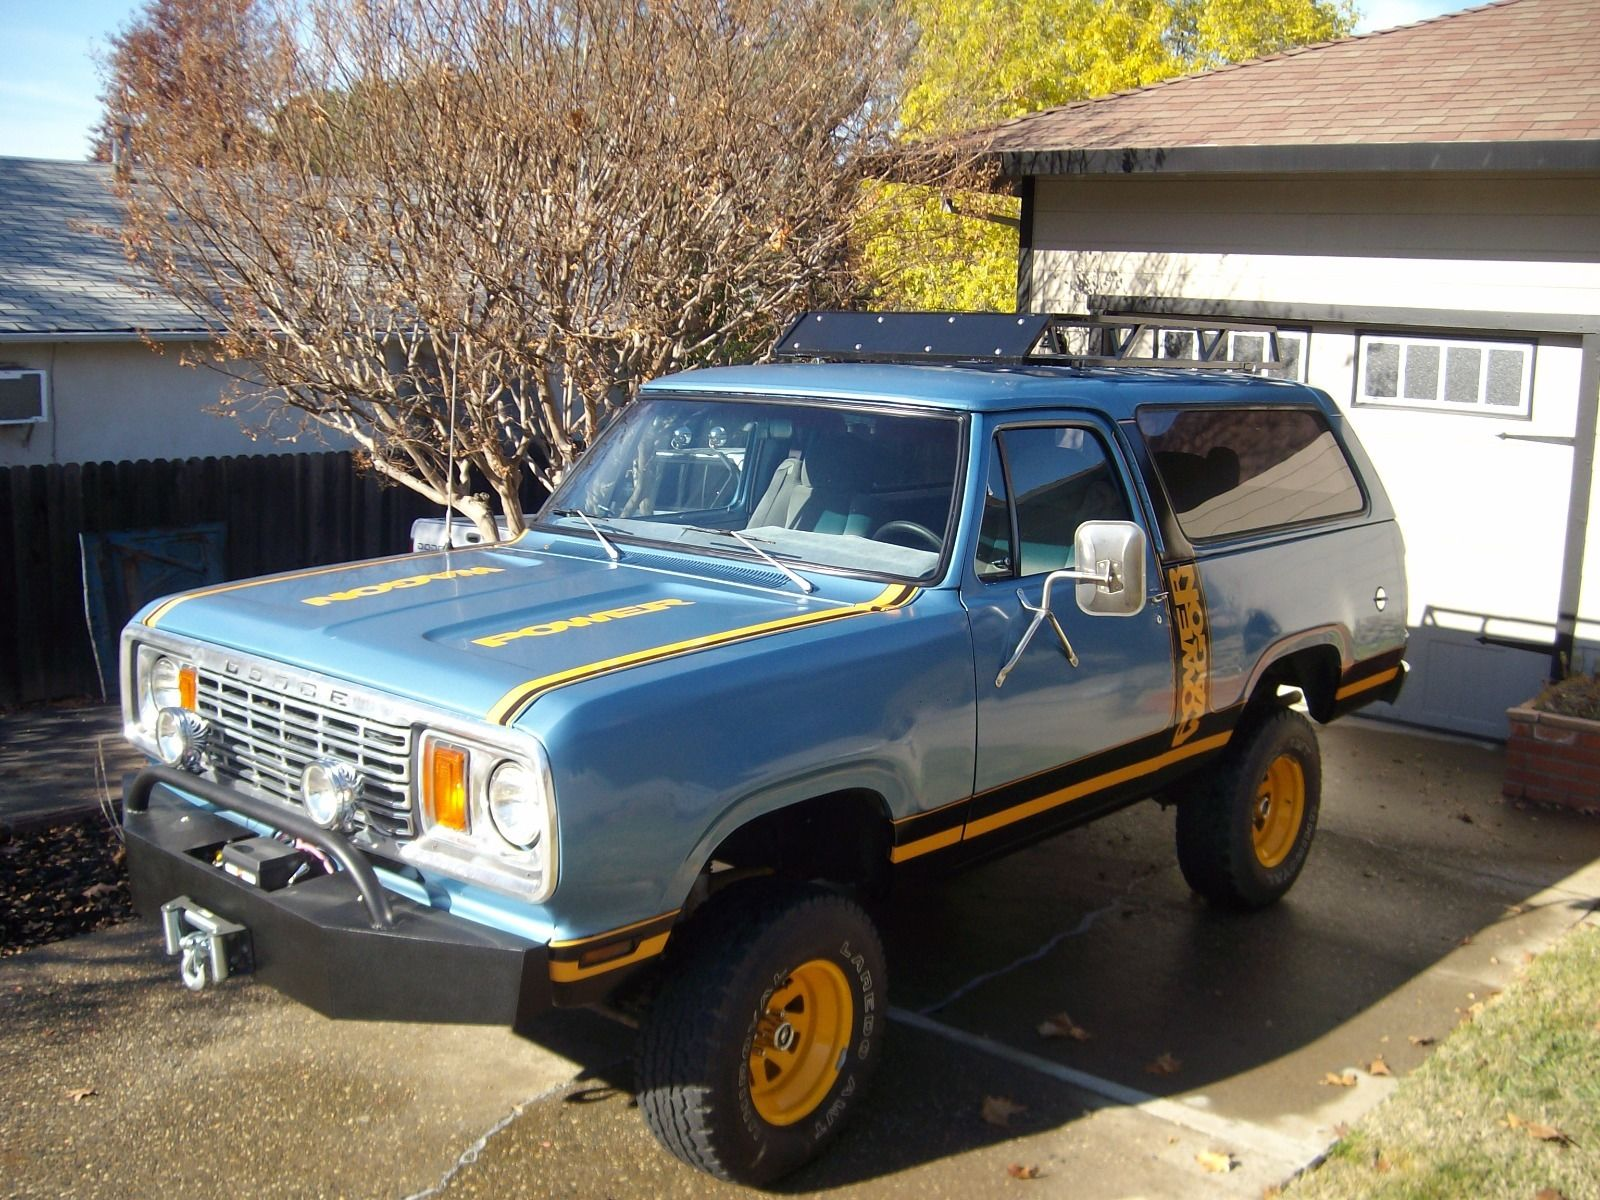 1978 GMC Sierra Overview C10564 besides Fully Customized 1995 Dodge Ram 1500 Slt Sport Custom furthermore 2006 Dodge Caravan Pictures C1632 pi36672953 also Collectionddwn Dodge Ram Truck Drawing likewise 147988 1984 Dodge D150 Prospector Royal Se 12 Ton Shortbed Truck Pickup Rat Rod. on 1985 dodge power wagon